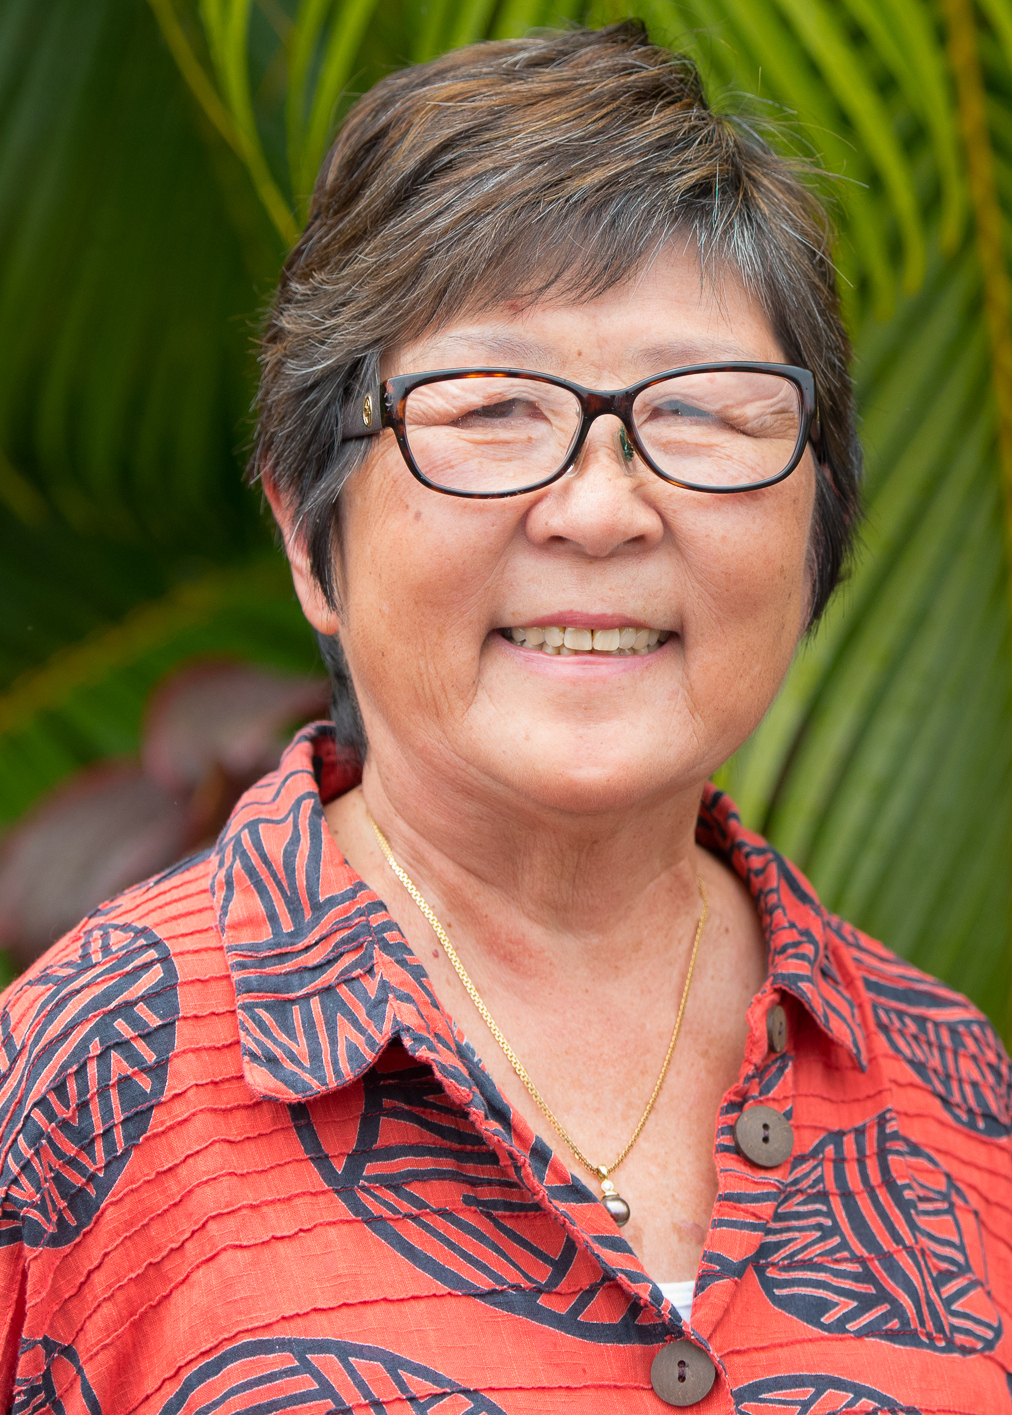 UH Hilo interim chancellor reaffirms commitment to free speech and expression